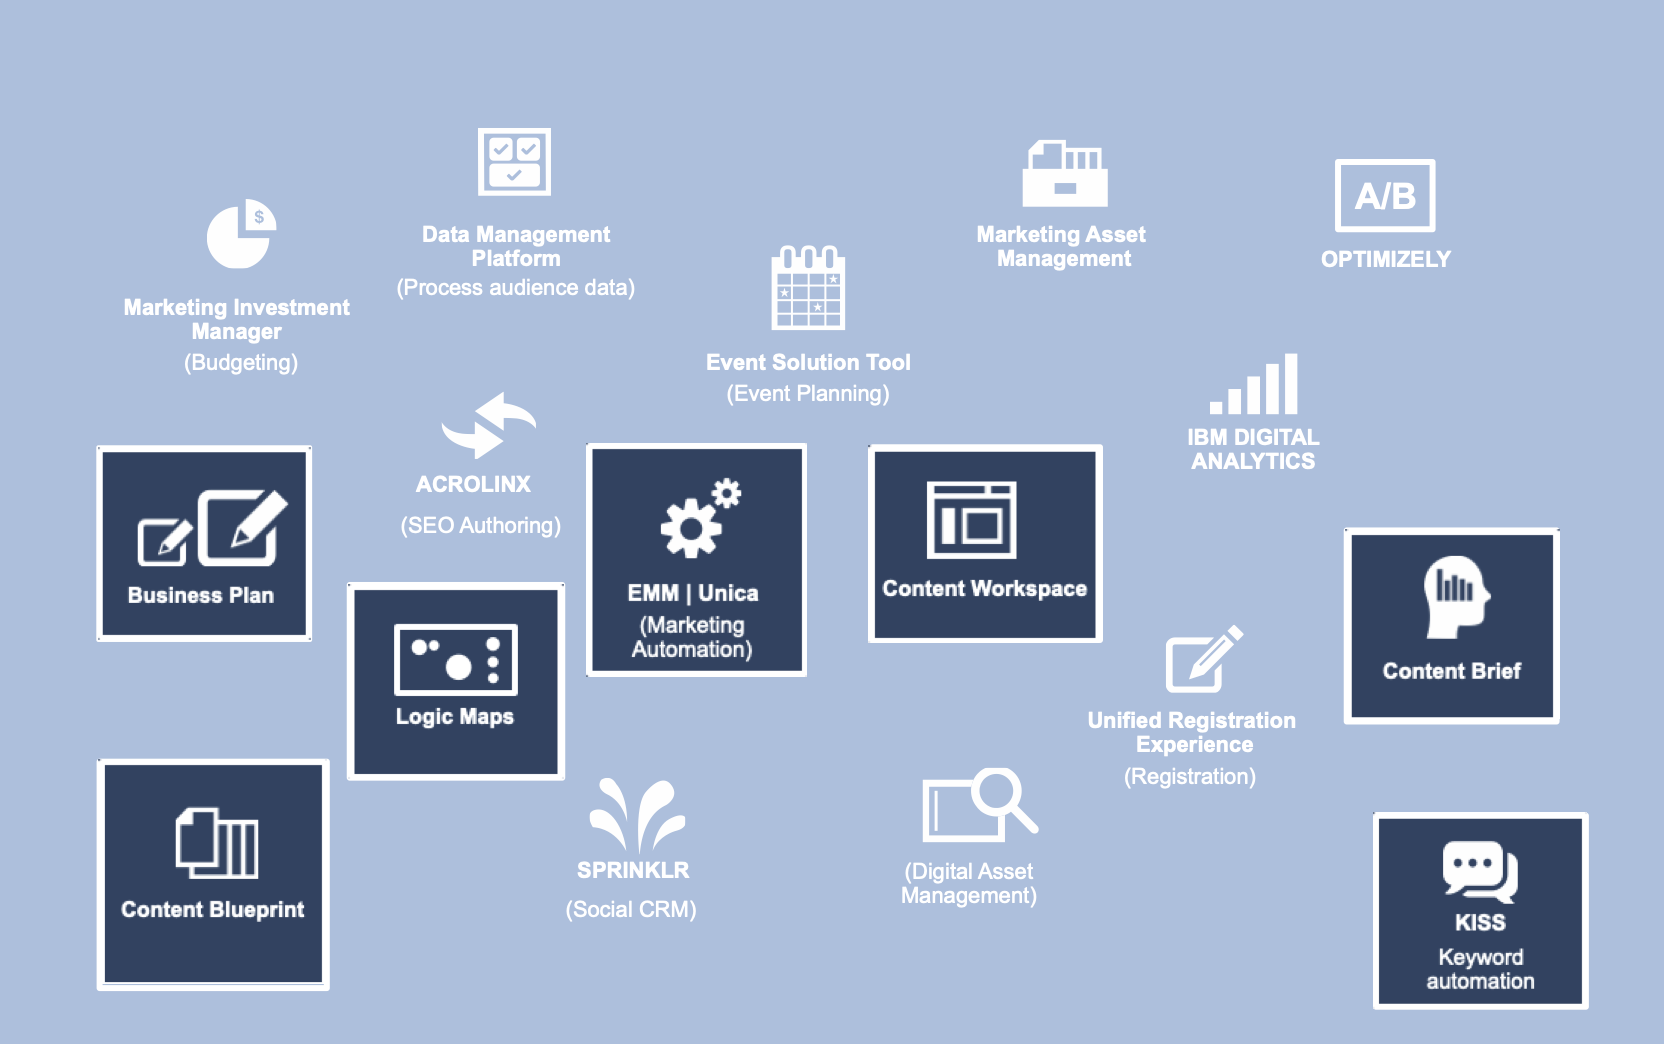 Array of tool names and icons, highlighting those that would be optimized or combined in the Marketer Workspace tool